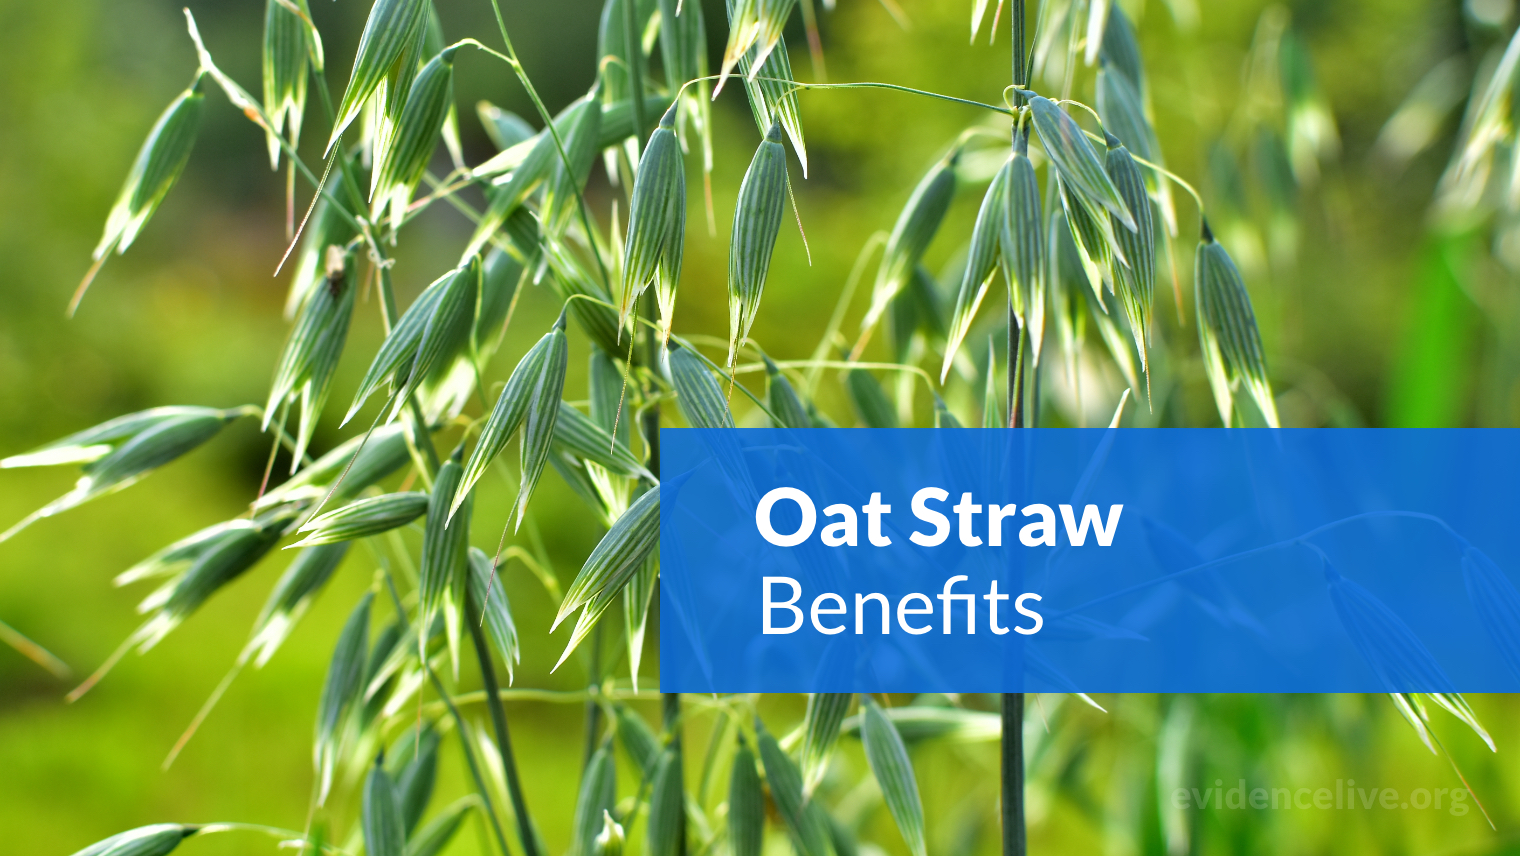 Oat Straw (Avena Sativa) Benefits: What Is The Extract Used For?